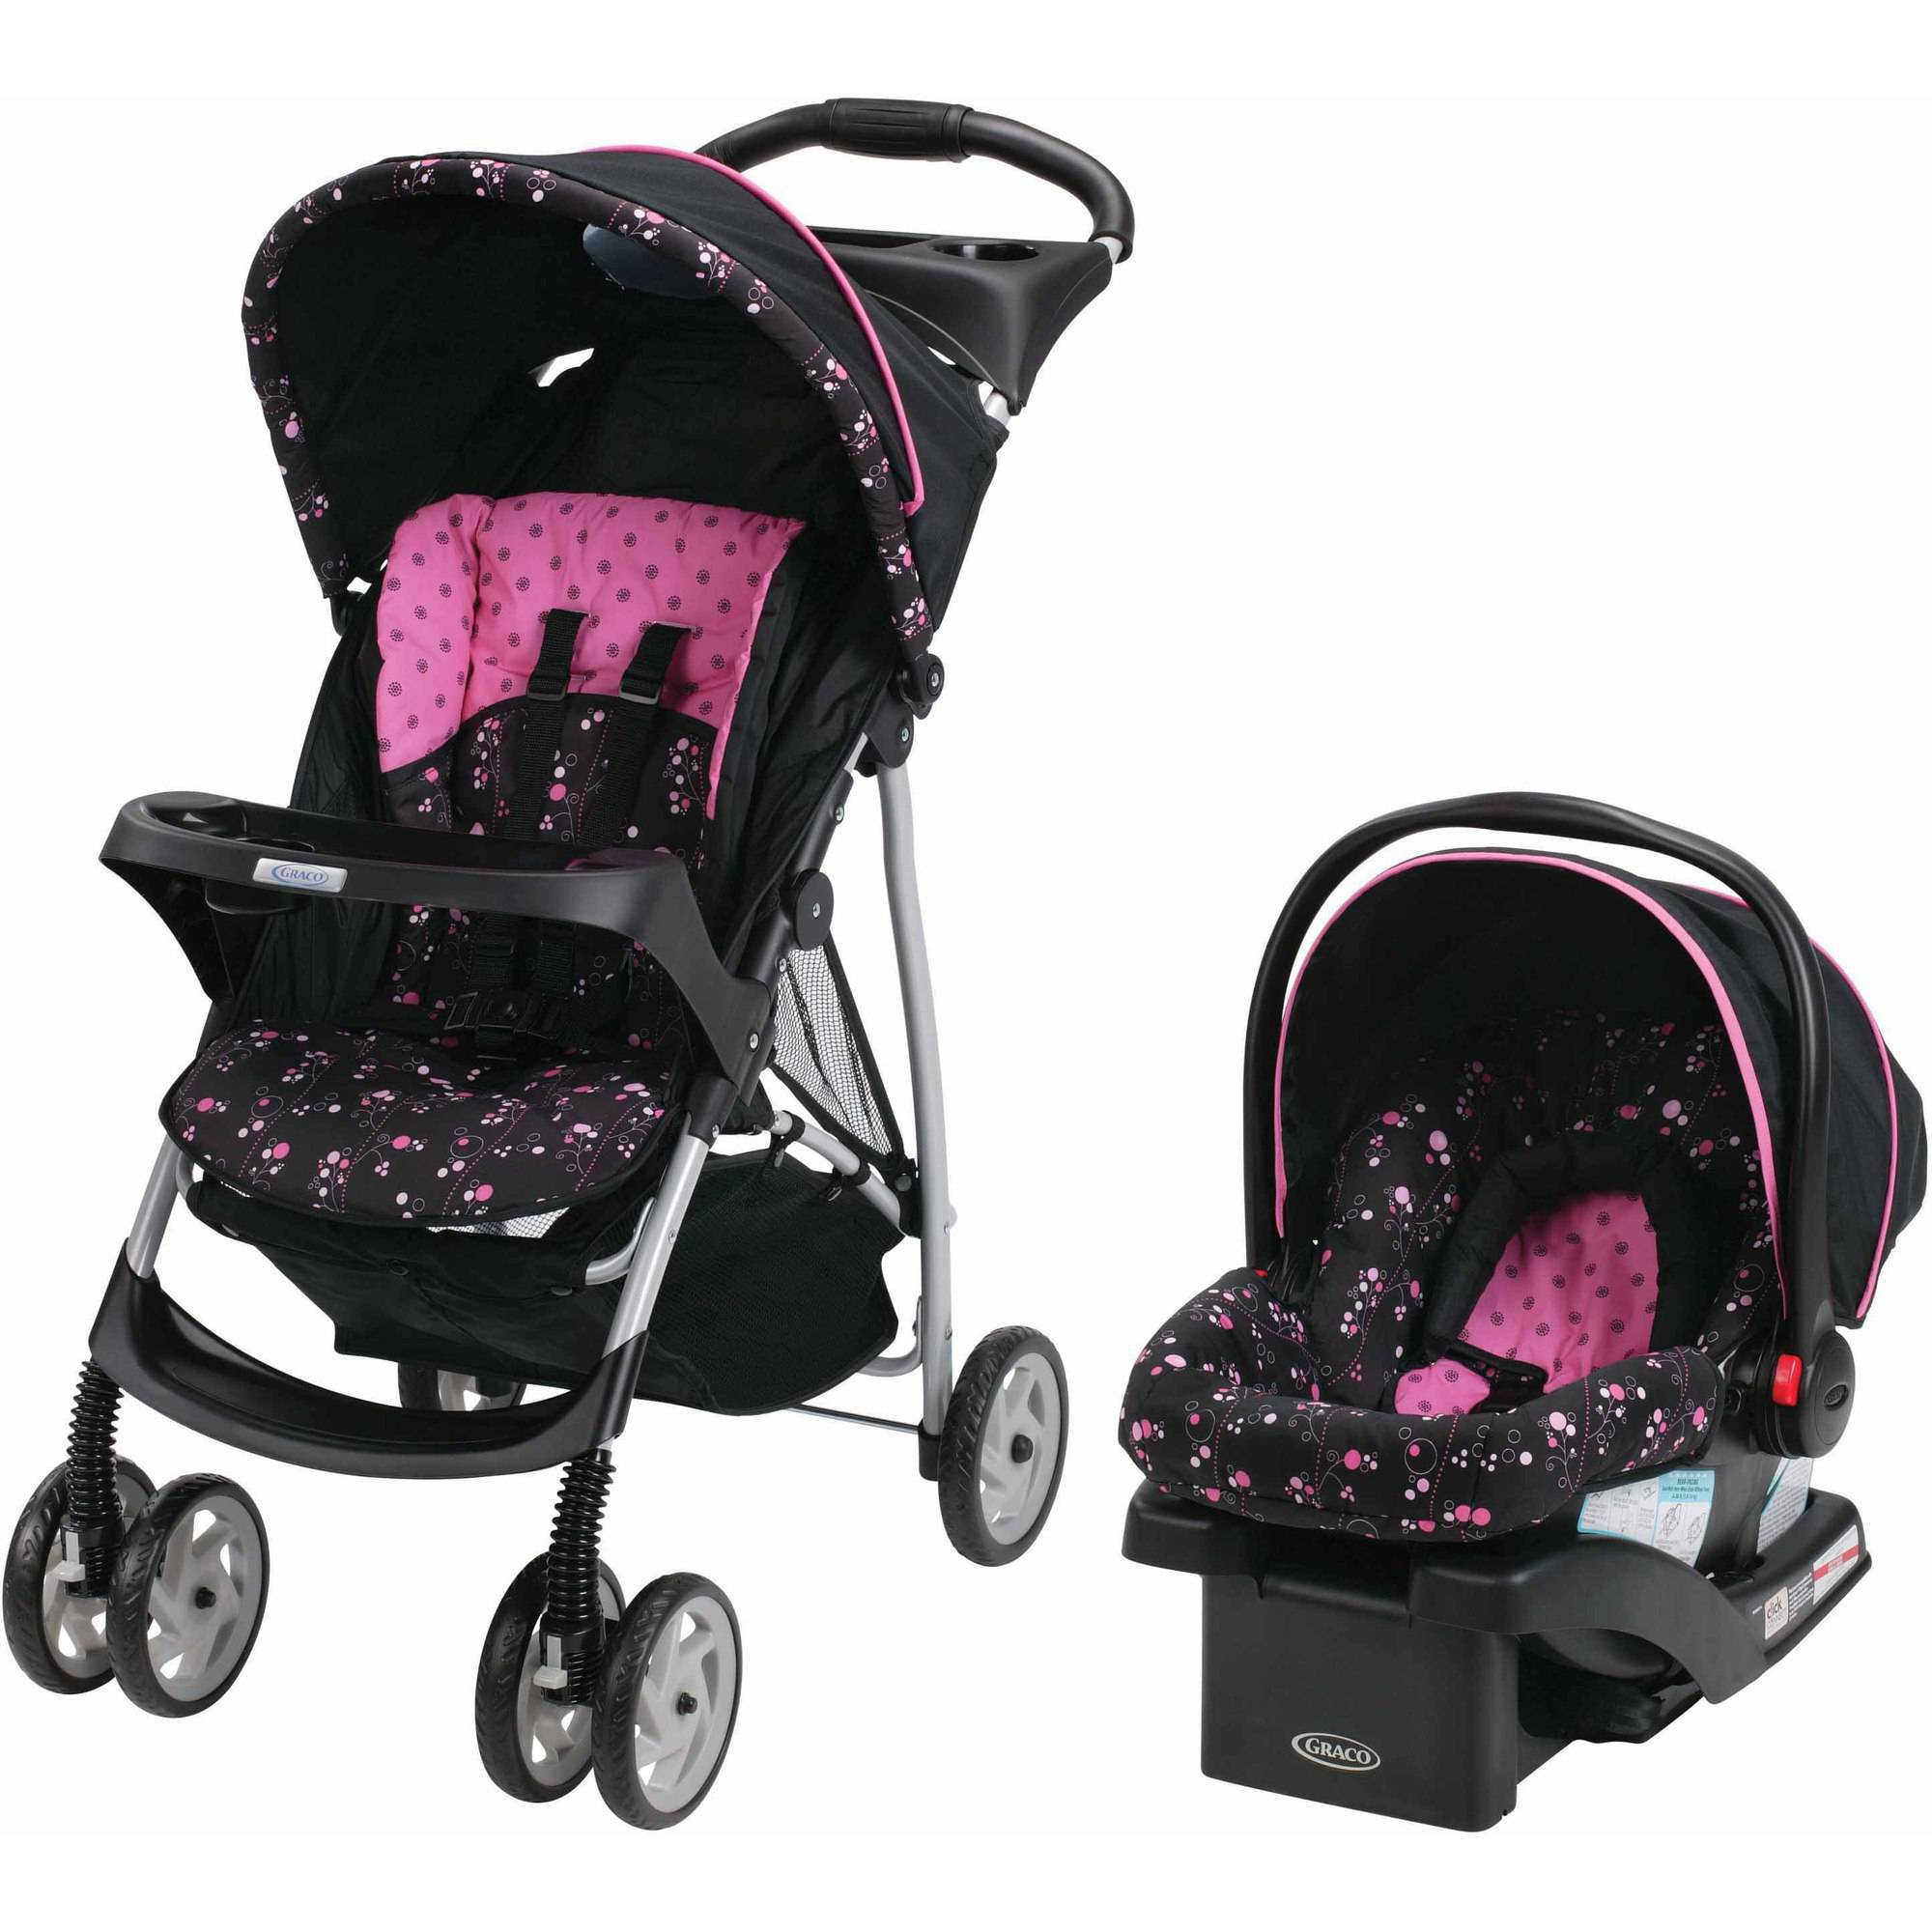 Graco Spree Travel System, Priscilla